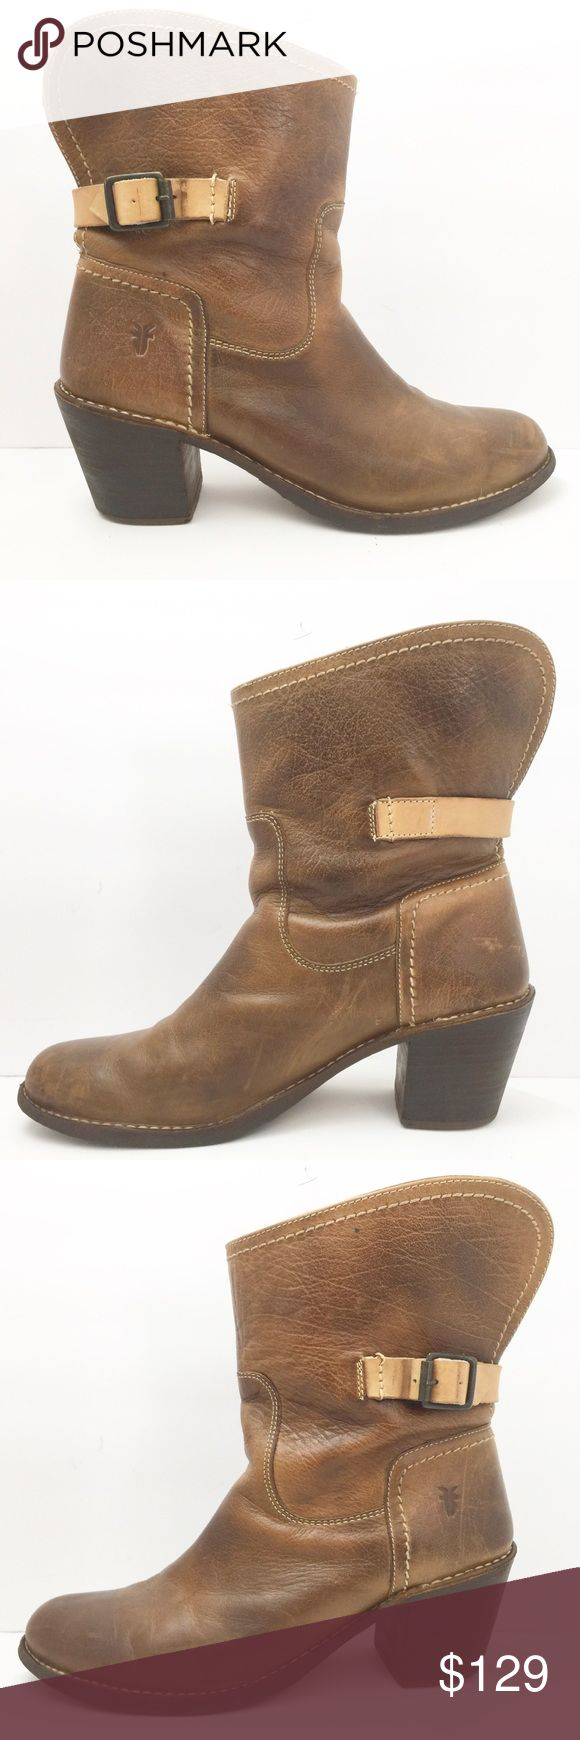 Frye Carmen Shortie Brown Leather Motorcycle Boots Frye Carmen Shortie Brown Leather Pull on Motorcycle Boots. Women's Size 10 (B) Medium 77840. Frye Shoes Ankle Boots & Booties